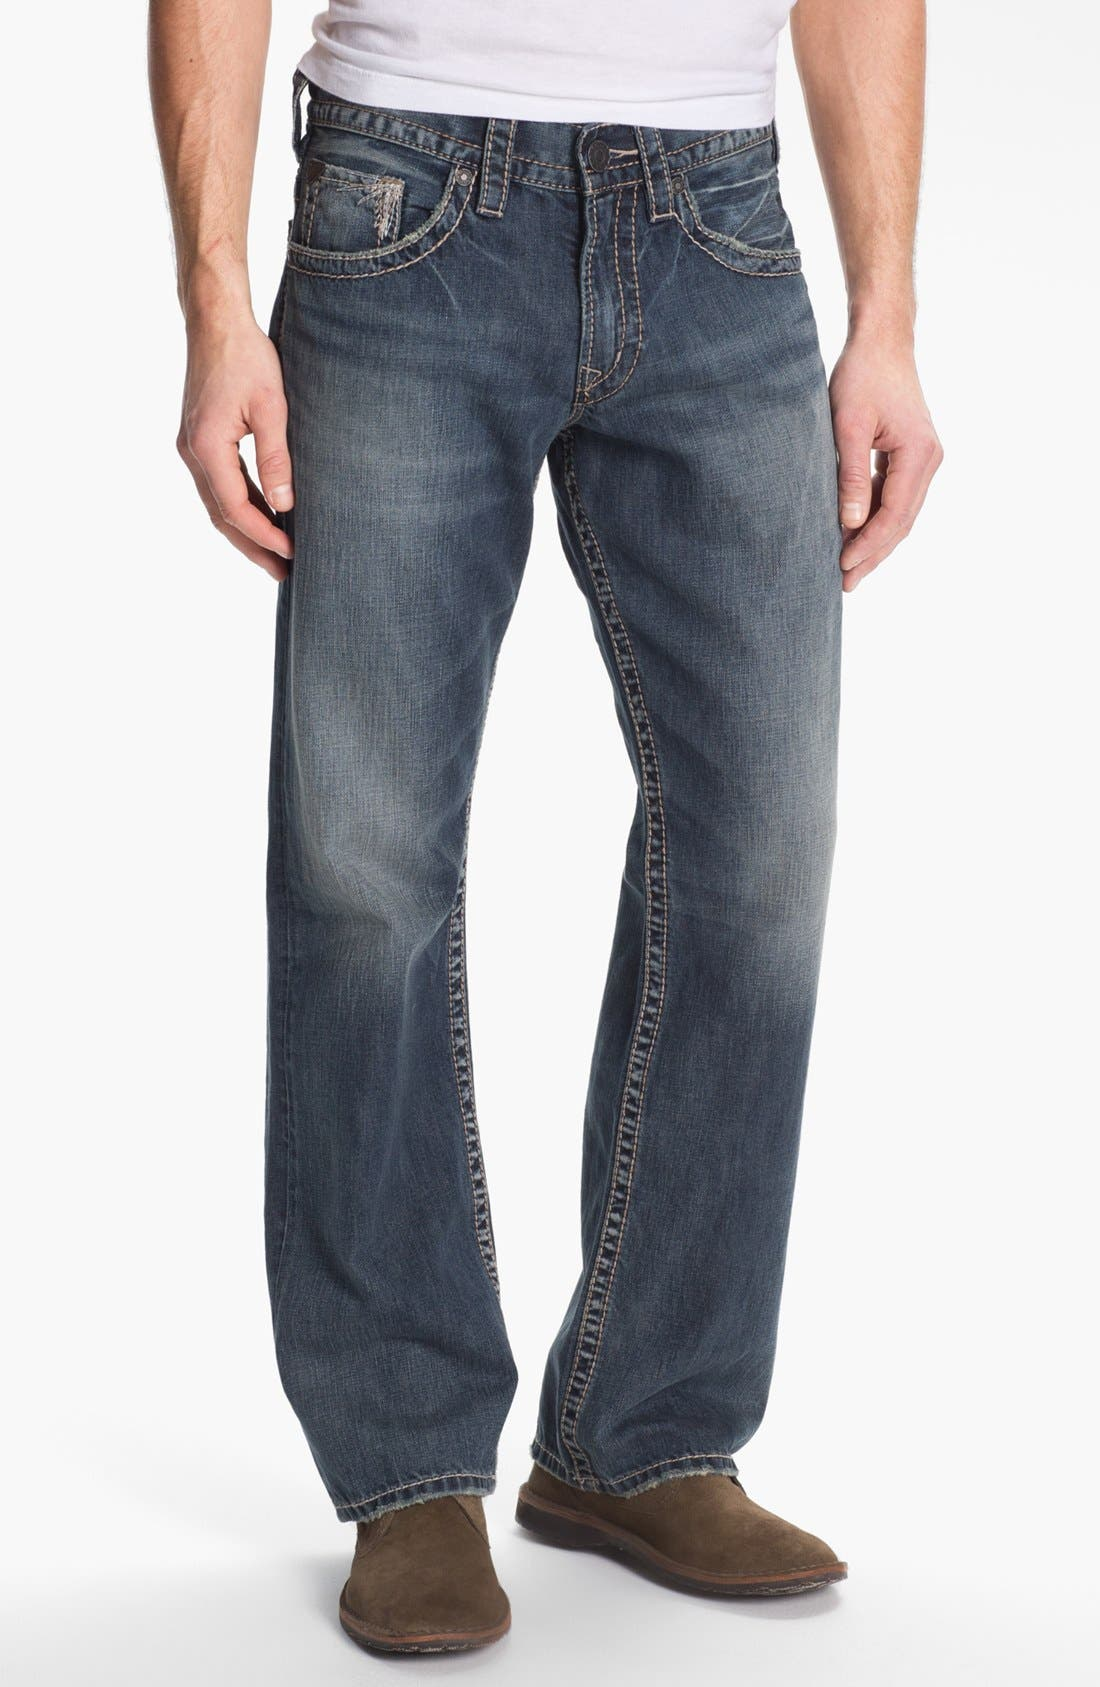 Alternate Image 2  - Silver Jeans Co. 'Gordie' Bootcut Jeans (Indigo)